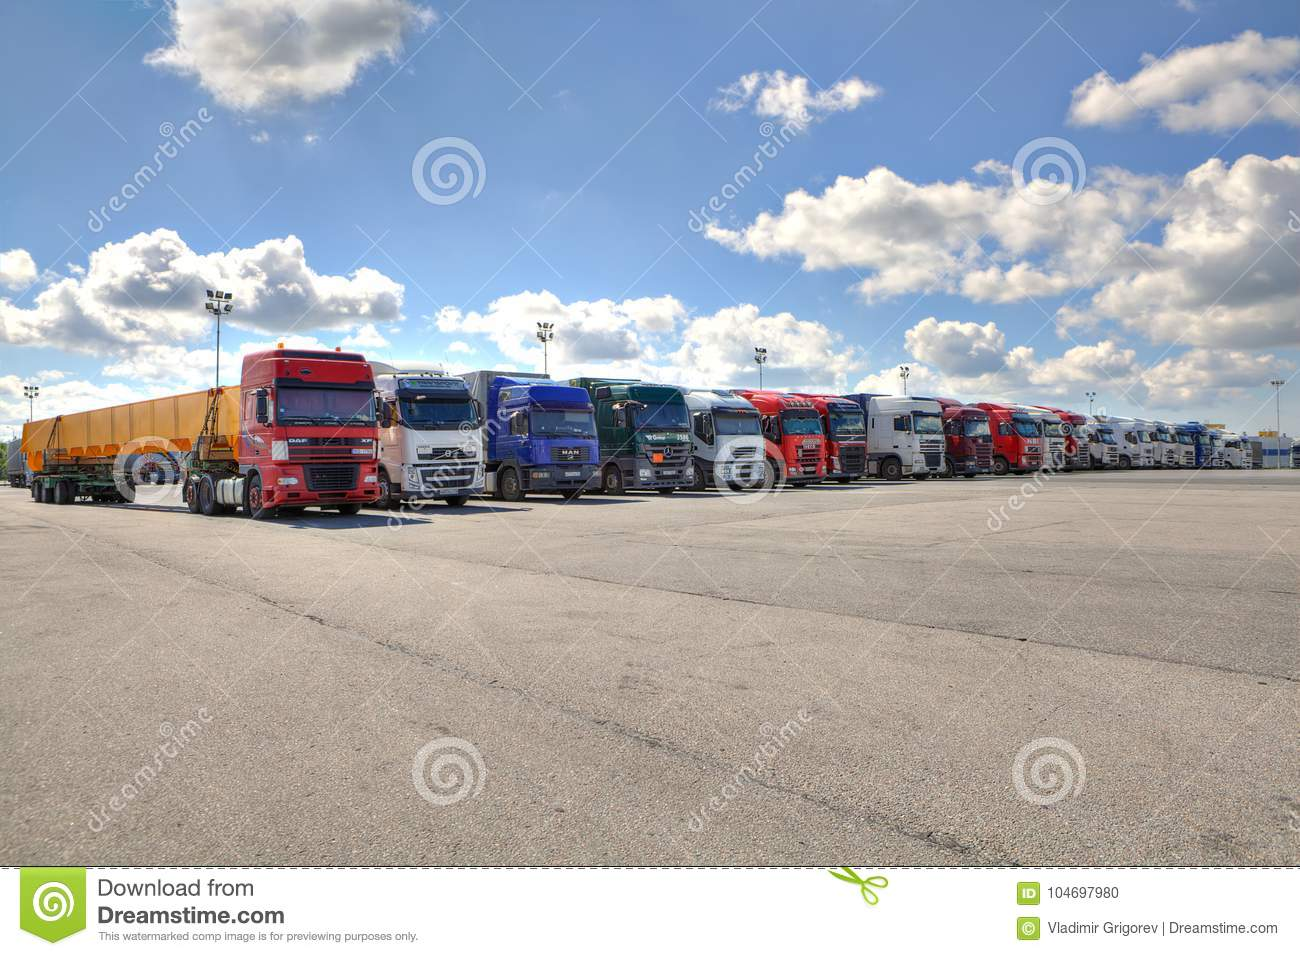 Fleet of lorries with trailer in courtyard of logistics terminal